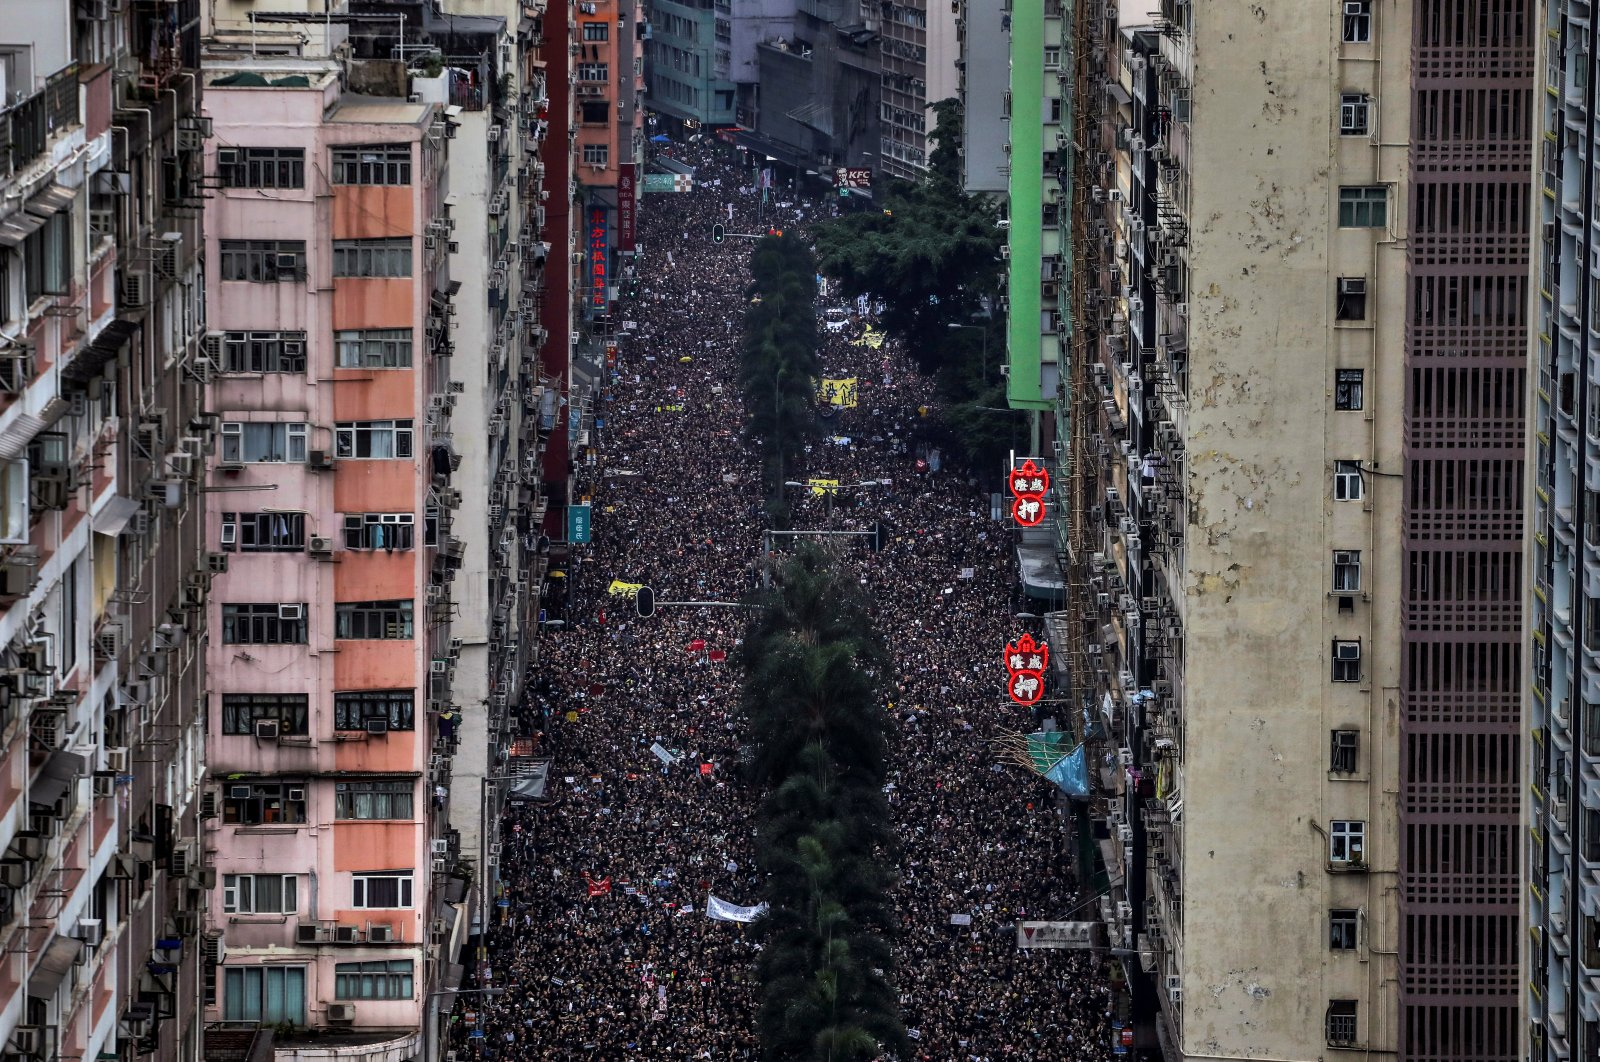 Hundreds of thousands protesters march through the streets of Hong Kong, China, June 16, 2019. (Reuters Photo)